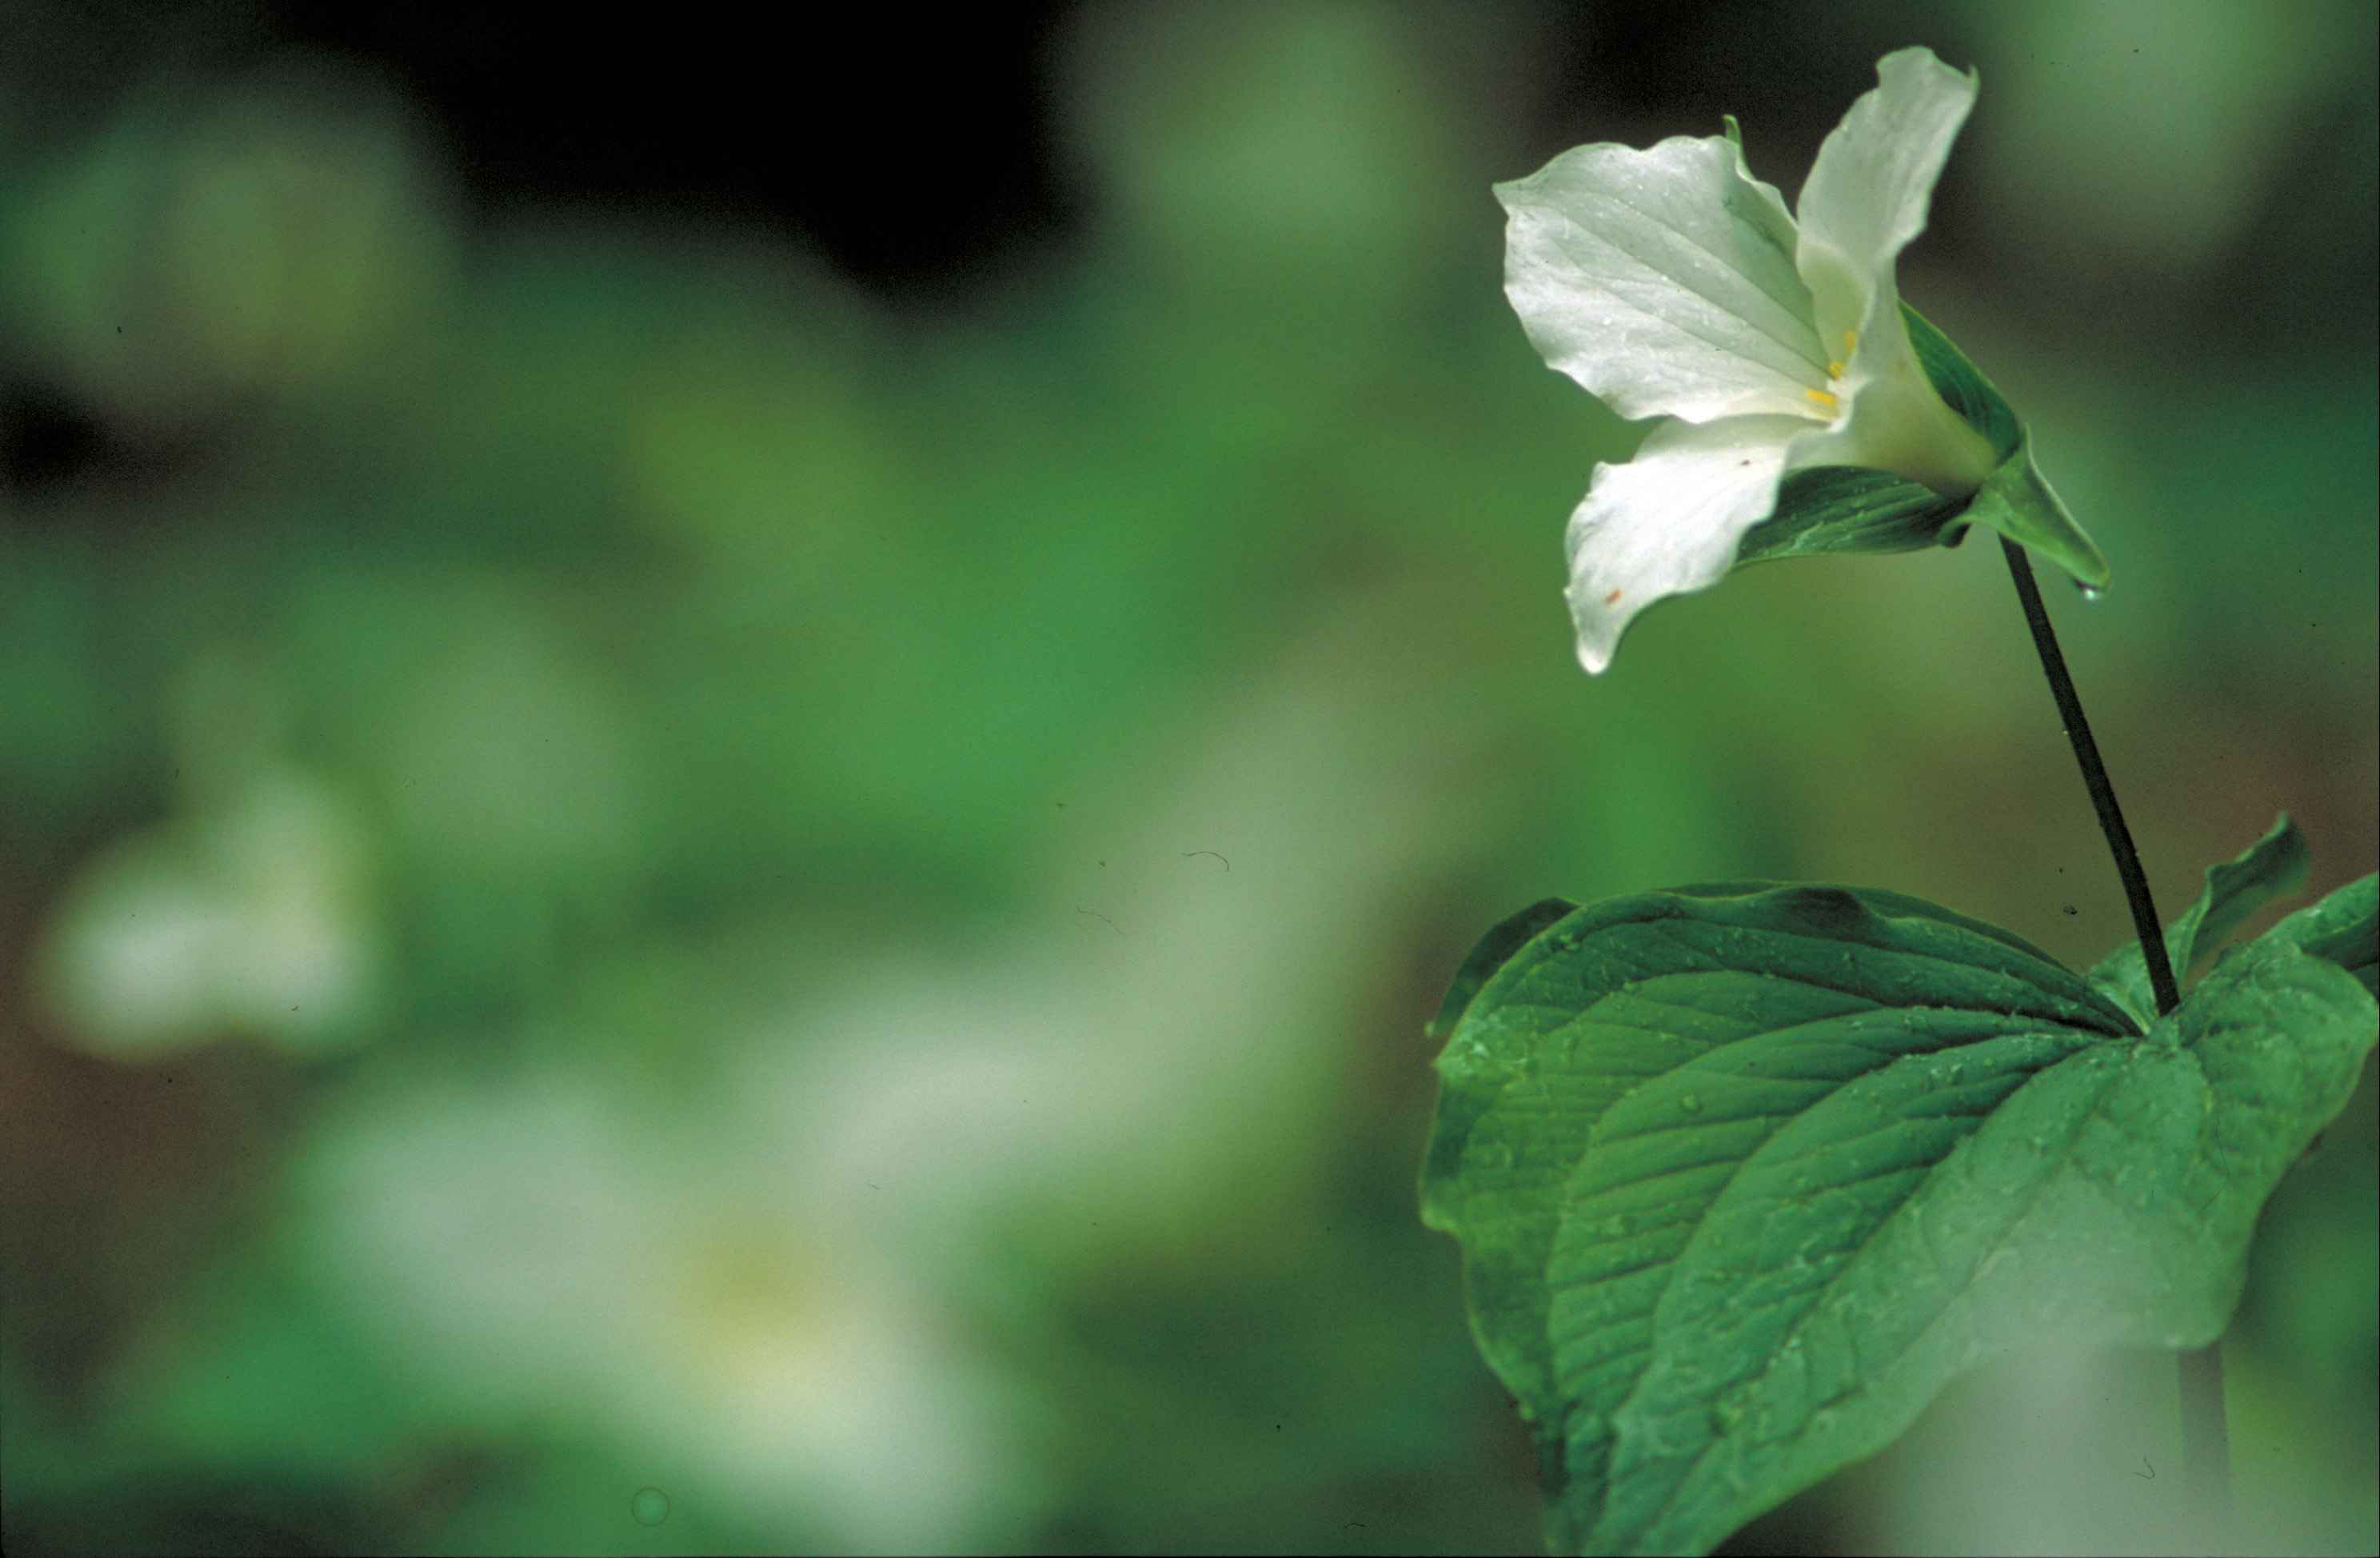 Fileclose Up Of Delicate White Trillium Flower Trillium